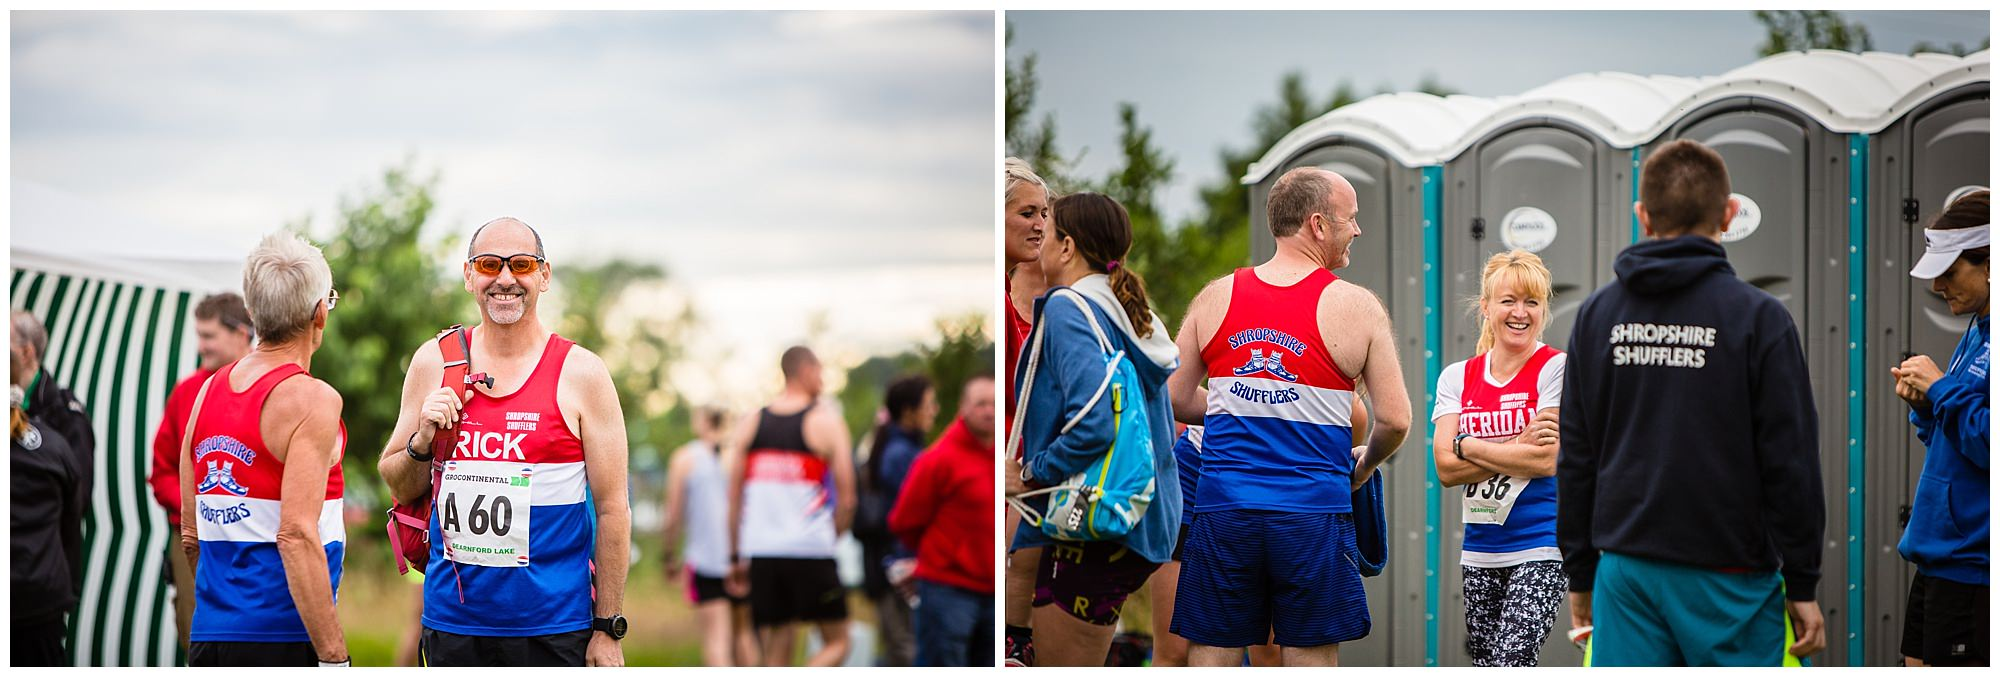 man stretching and team shots - alderford lake event photographer